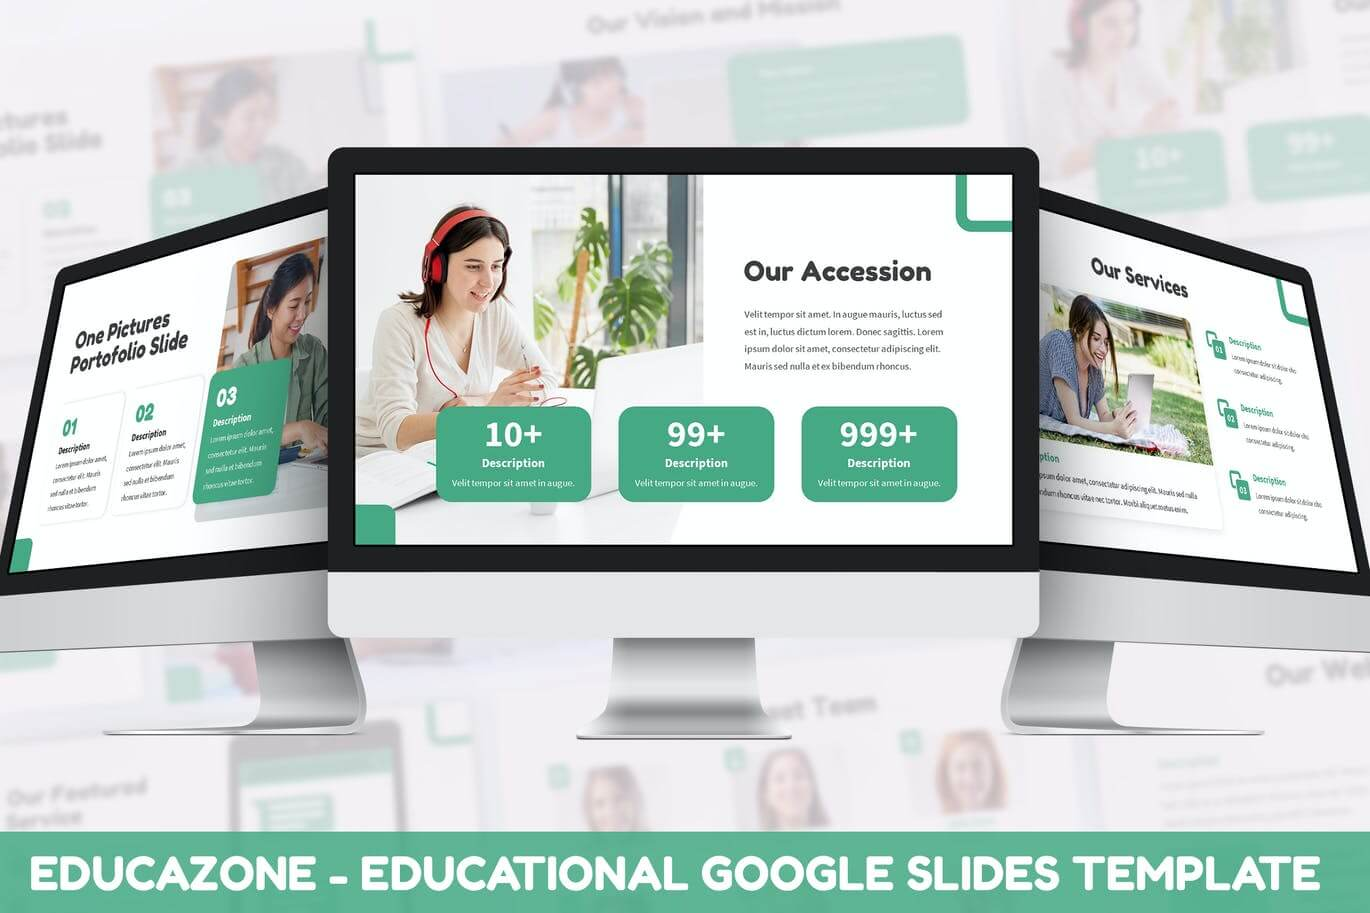 Educazone - Educational Google Slides Template (1)